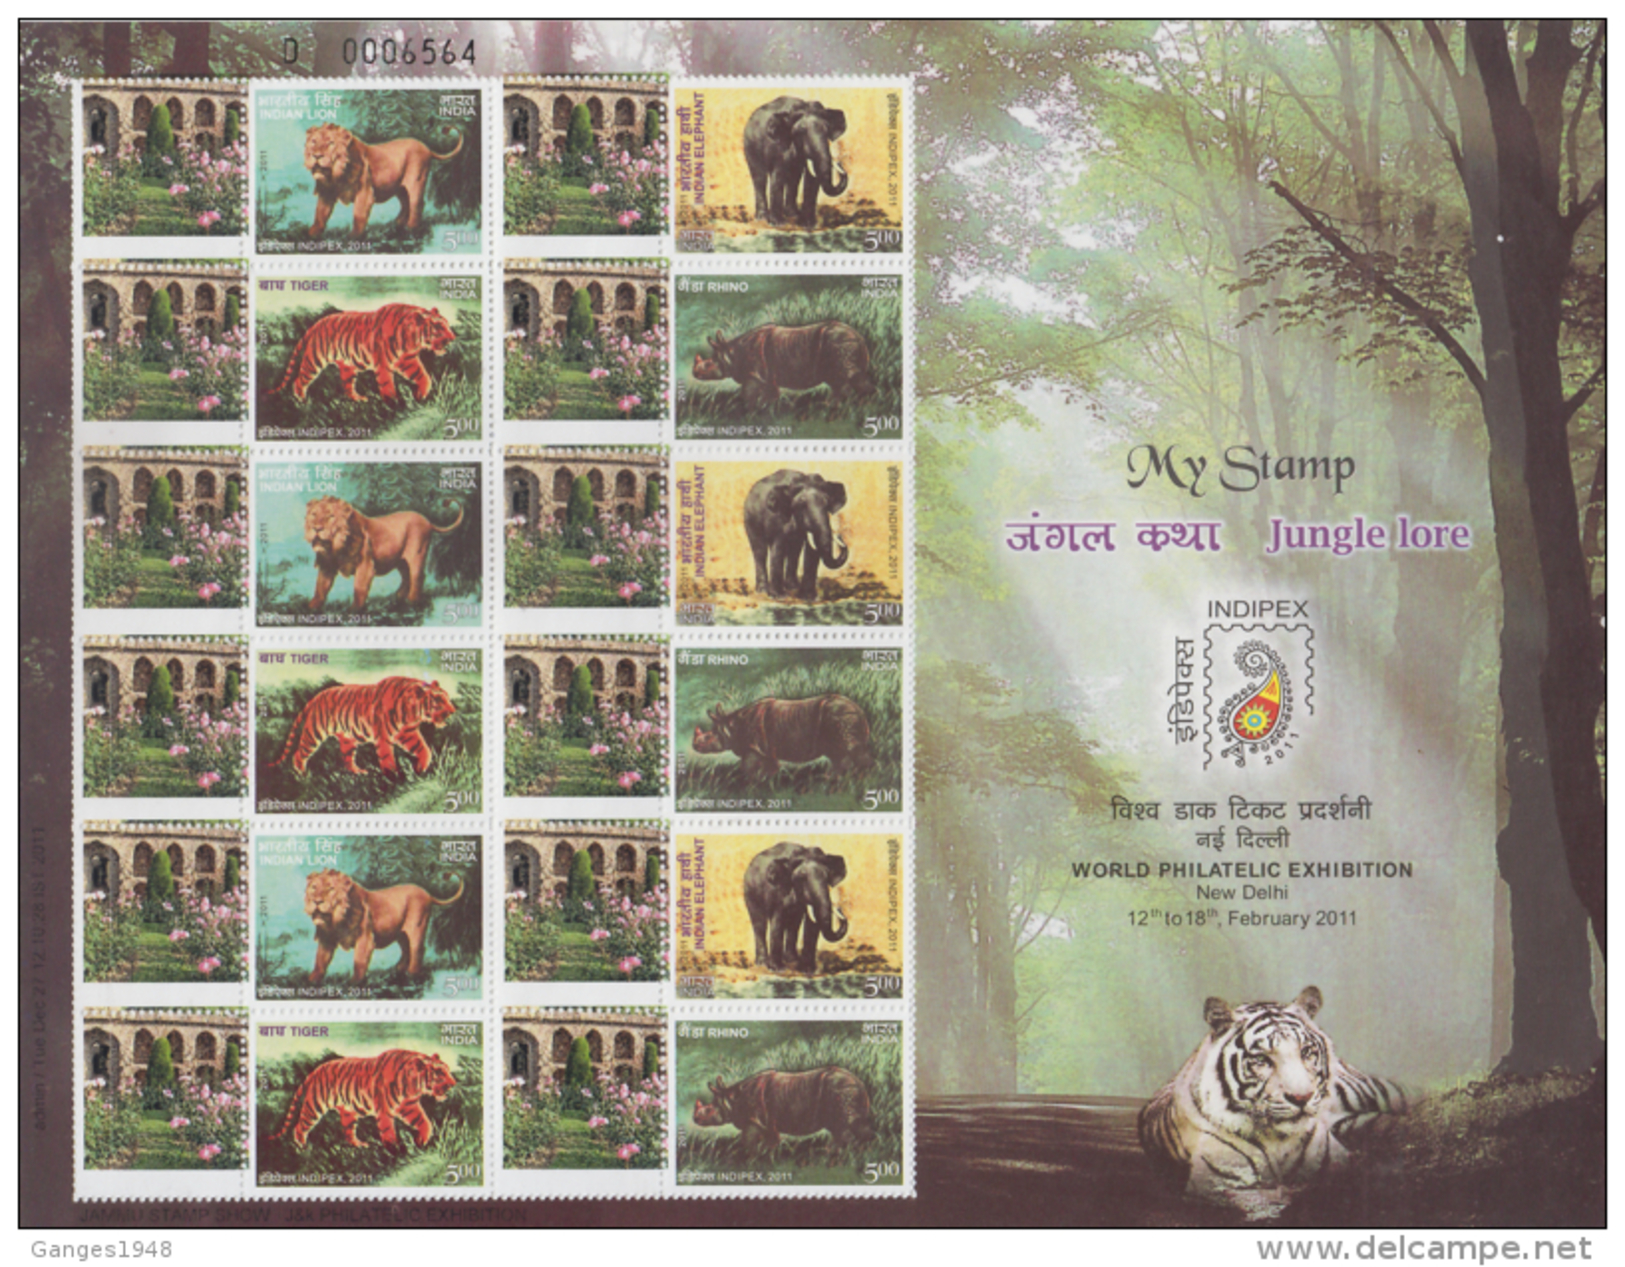 Special My Stamp   Lion  Tiger  Elephant  Rhino  Garden  Jungle Lore  INDIPEX  Sheet 2011  India  #  91013  Inde Indien - India